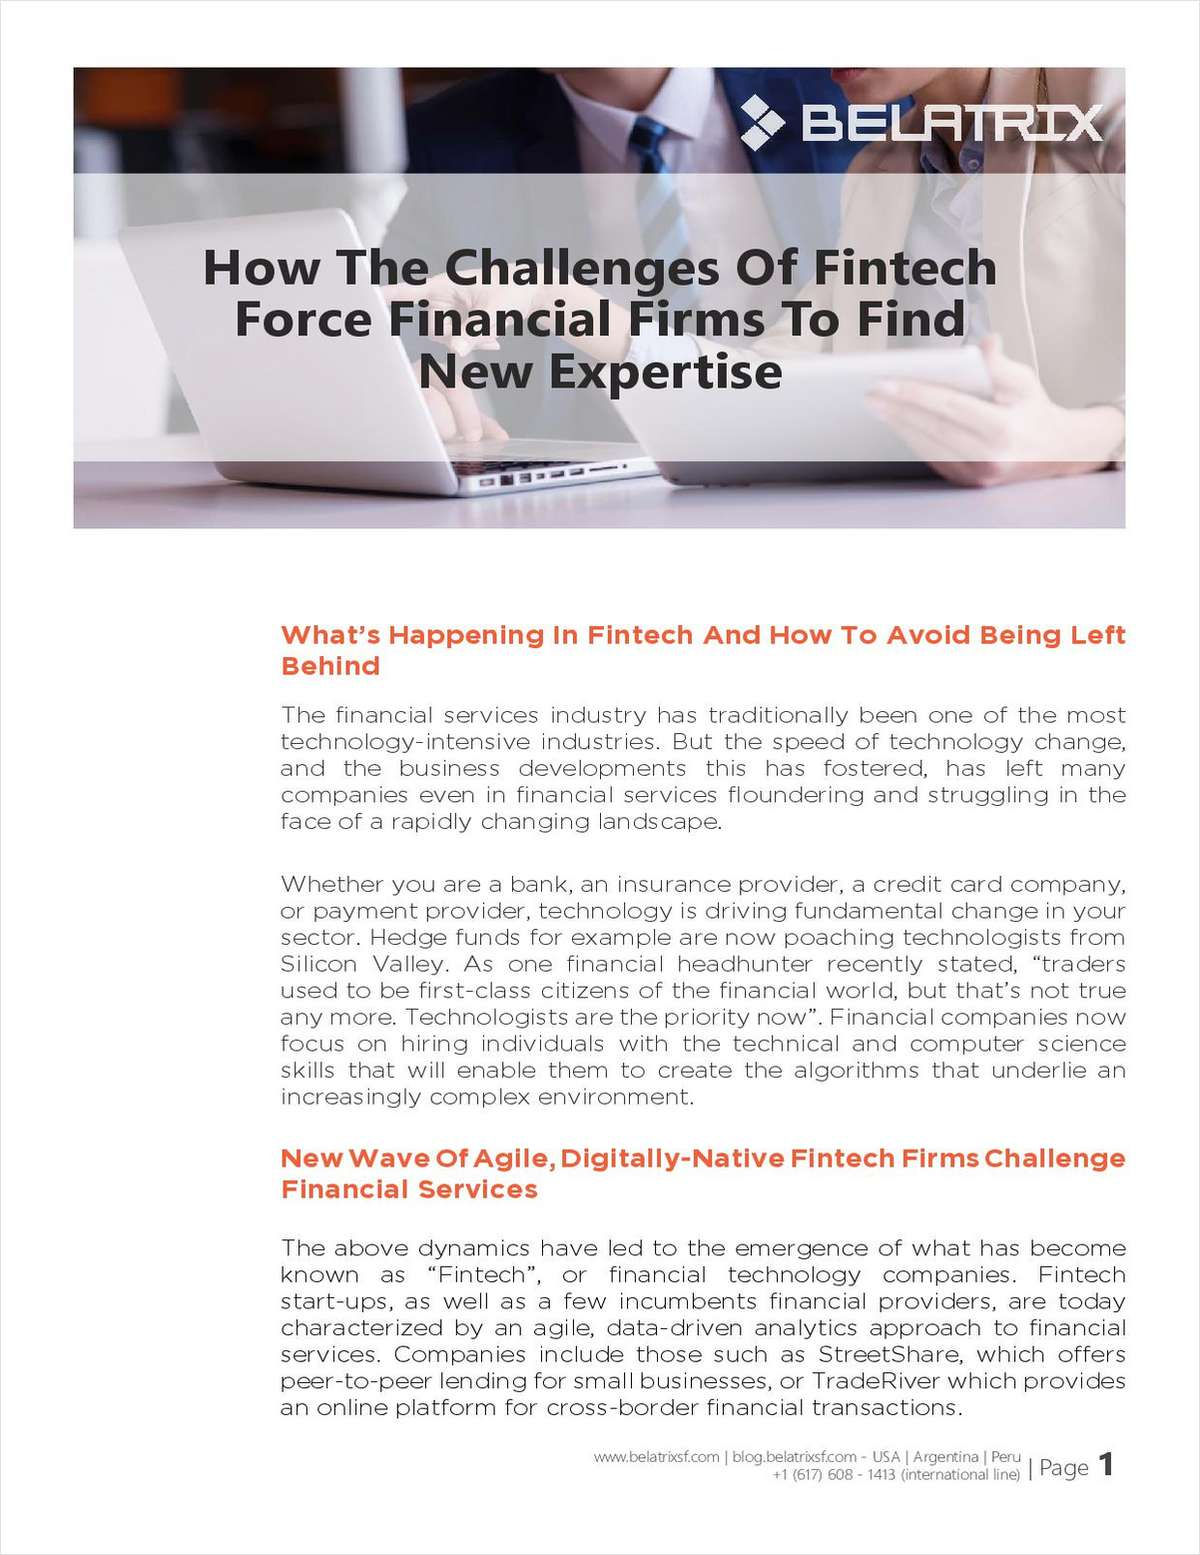 How the Challenges of Fintech Force Financial Firms to Find New Expertise